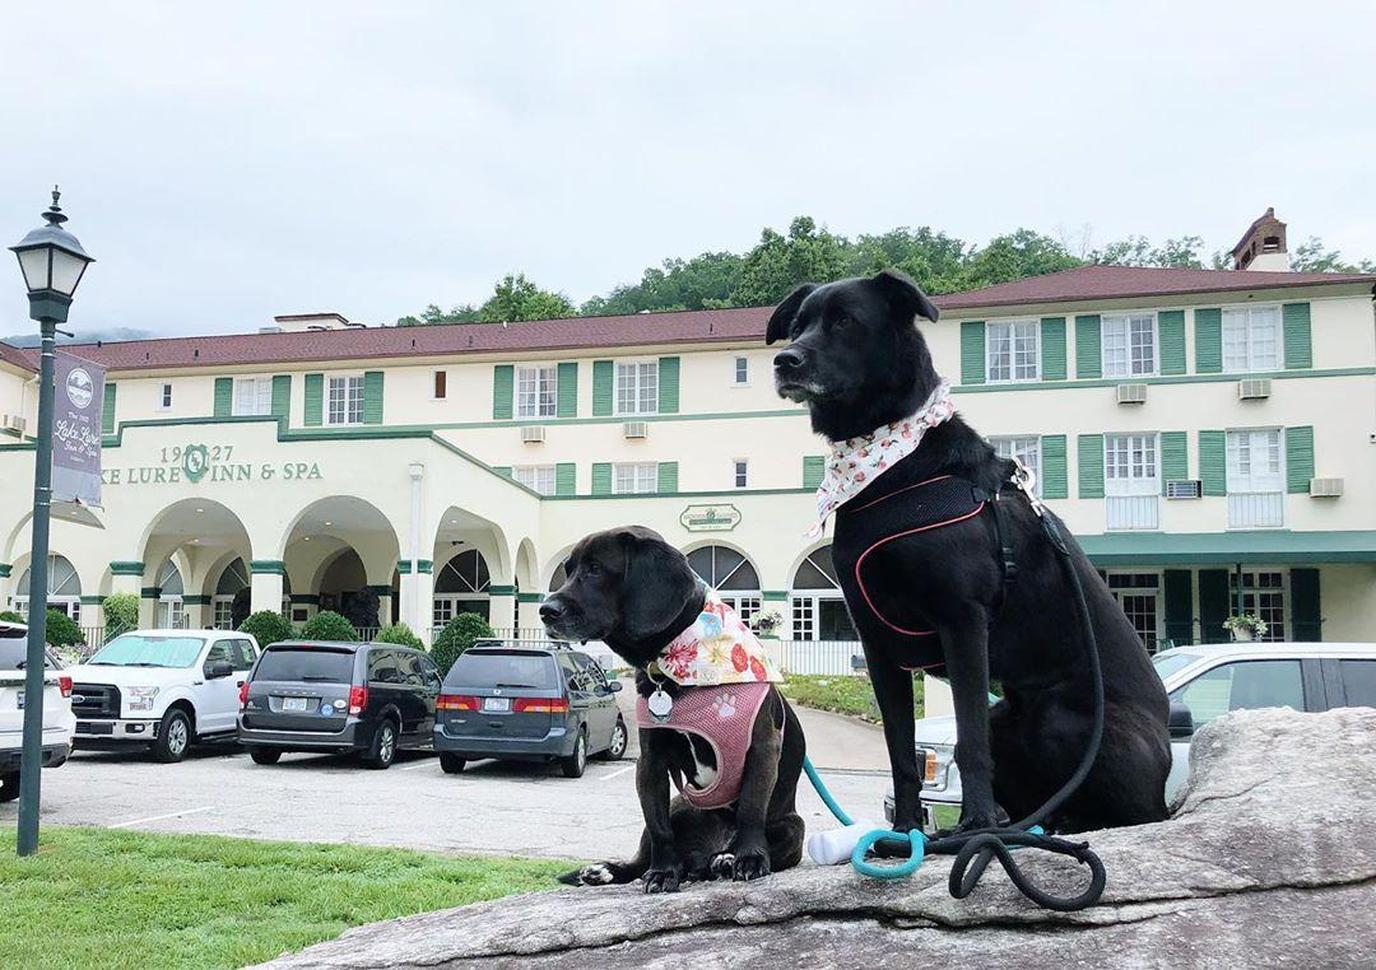 Two Black Dogs Stand in Front of The 1927 Lake Lure Inn & Spa.